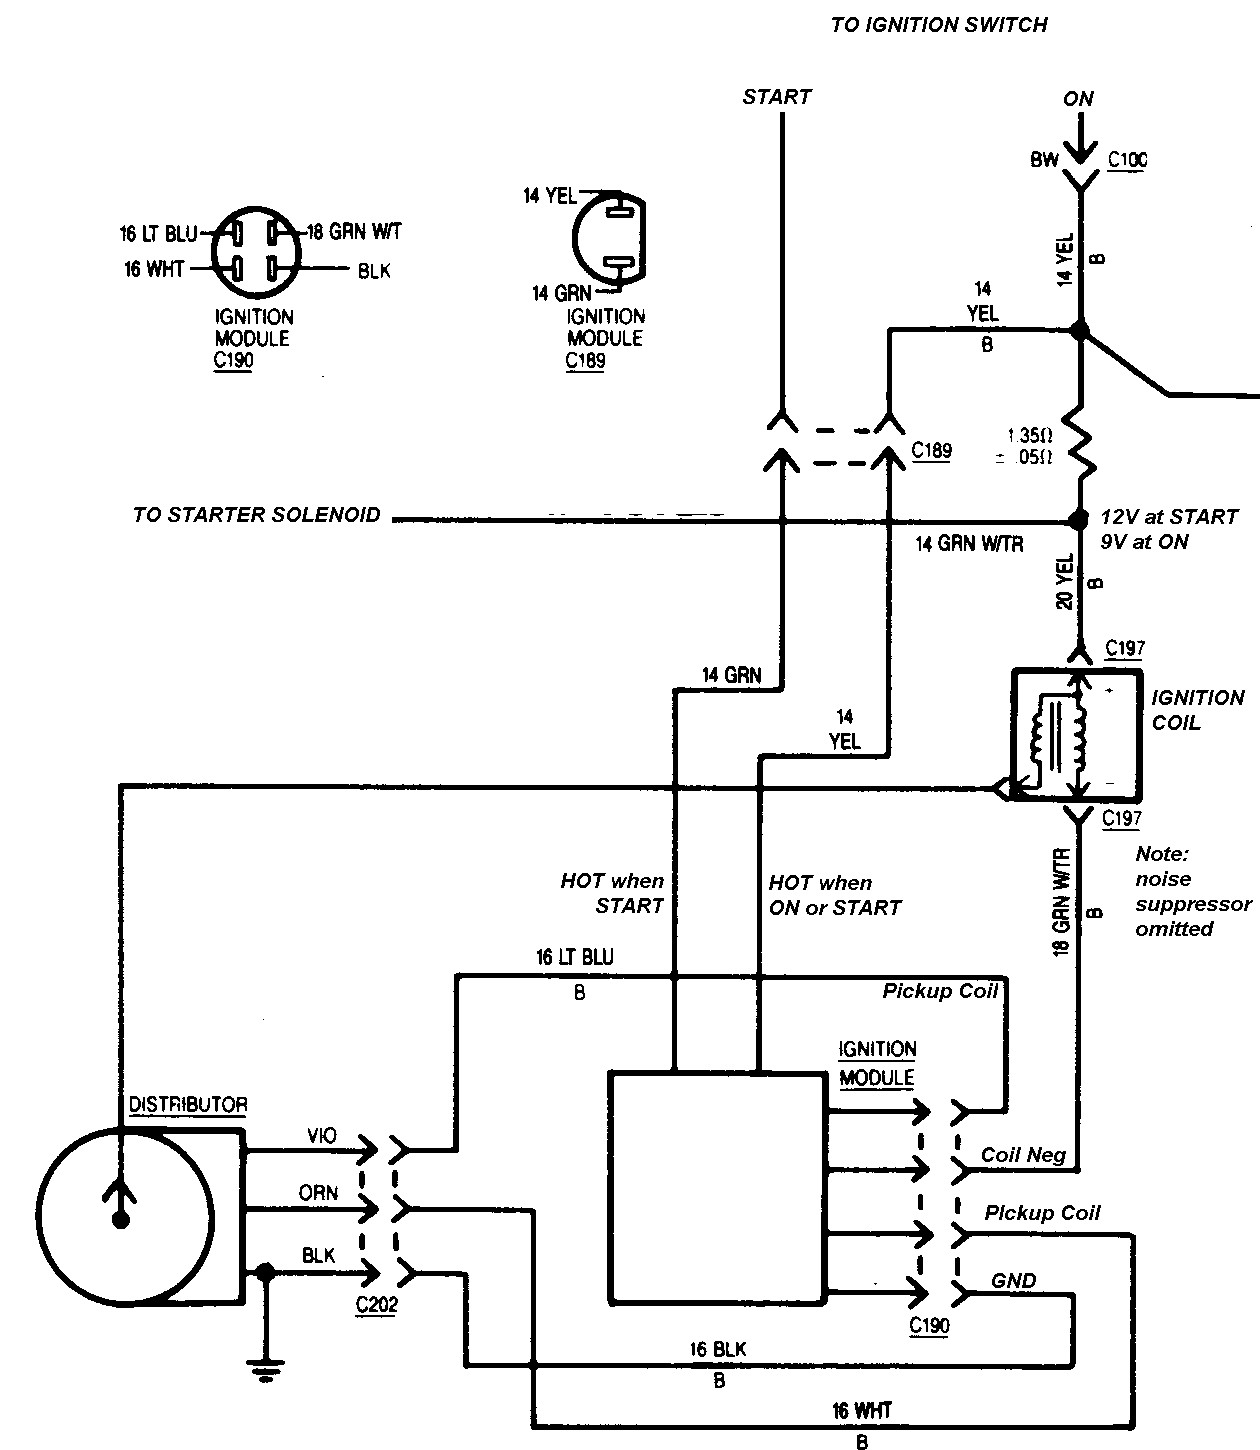 4 3 Chevy Tbi Control Wiring Diagram Library. Original Wiring Troubled Child GM Tbi Ignition 4 3 Chevy Control Diagram. Chevrolet. 96 4 3 Tbi Chevy Vacuum Diagram At Scoala.co